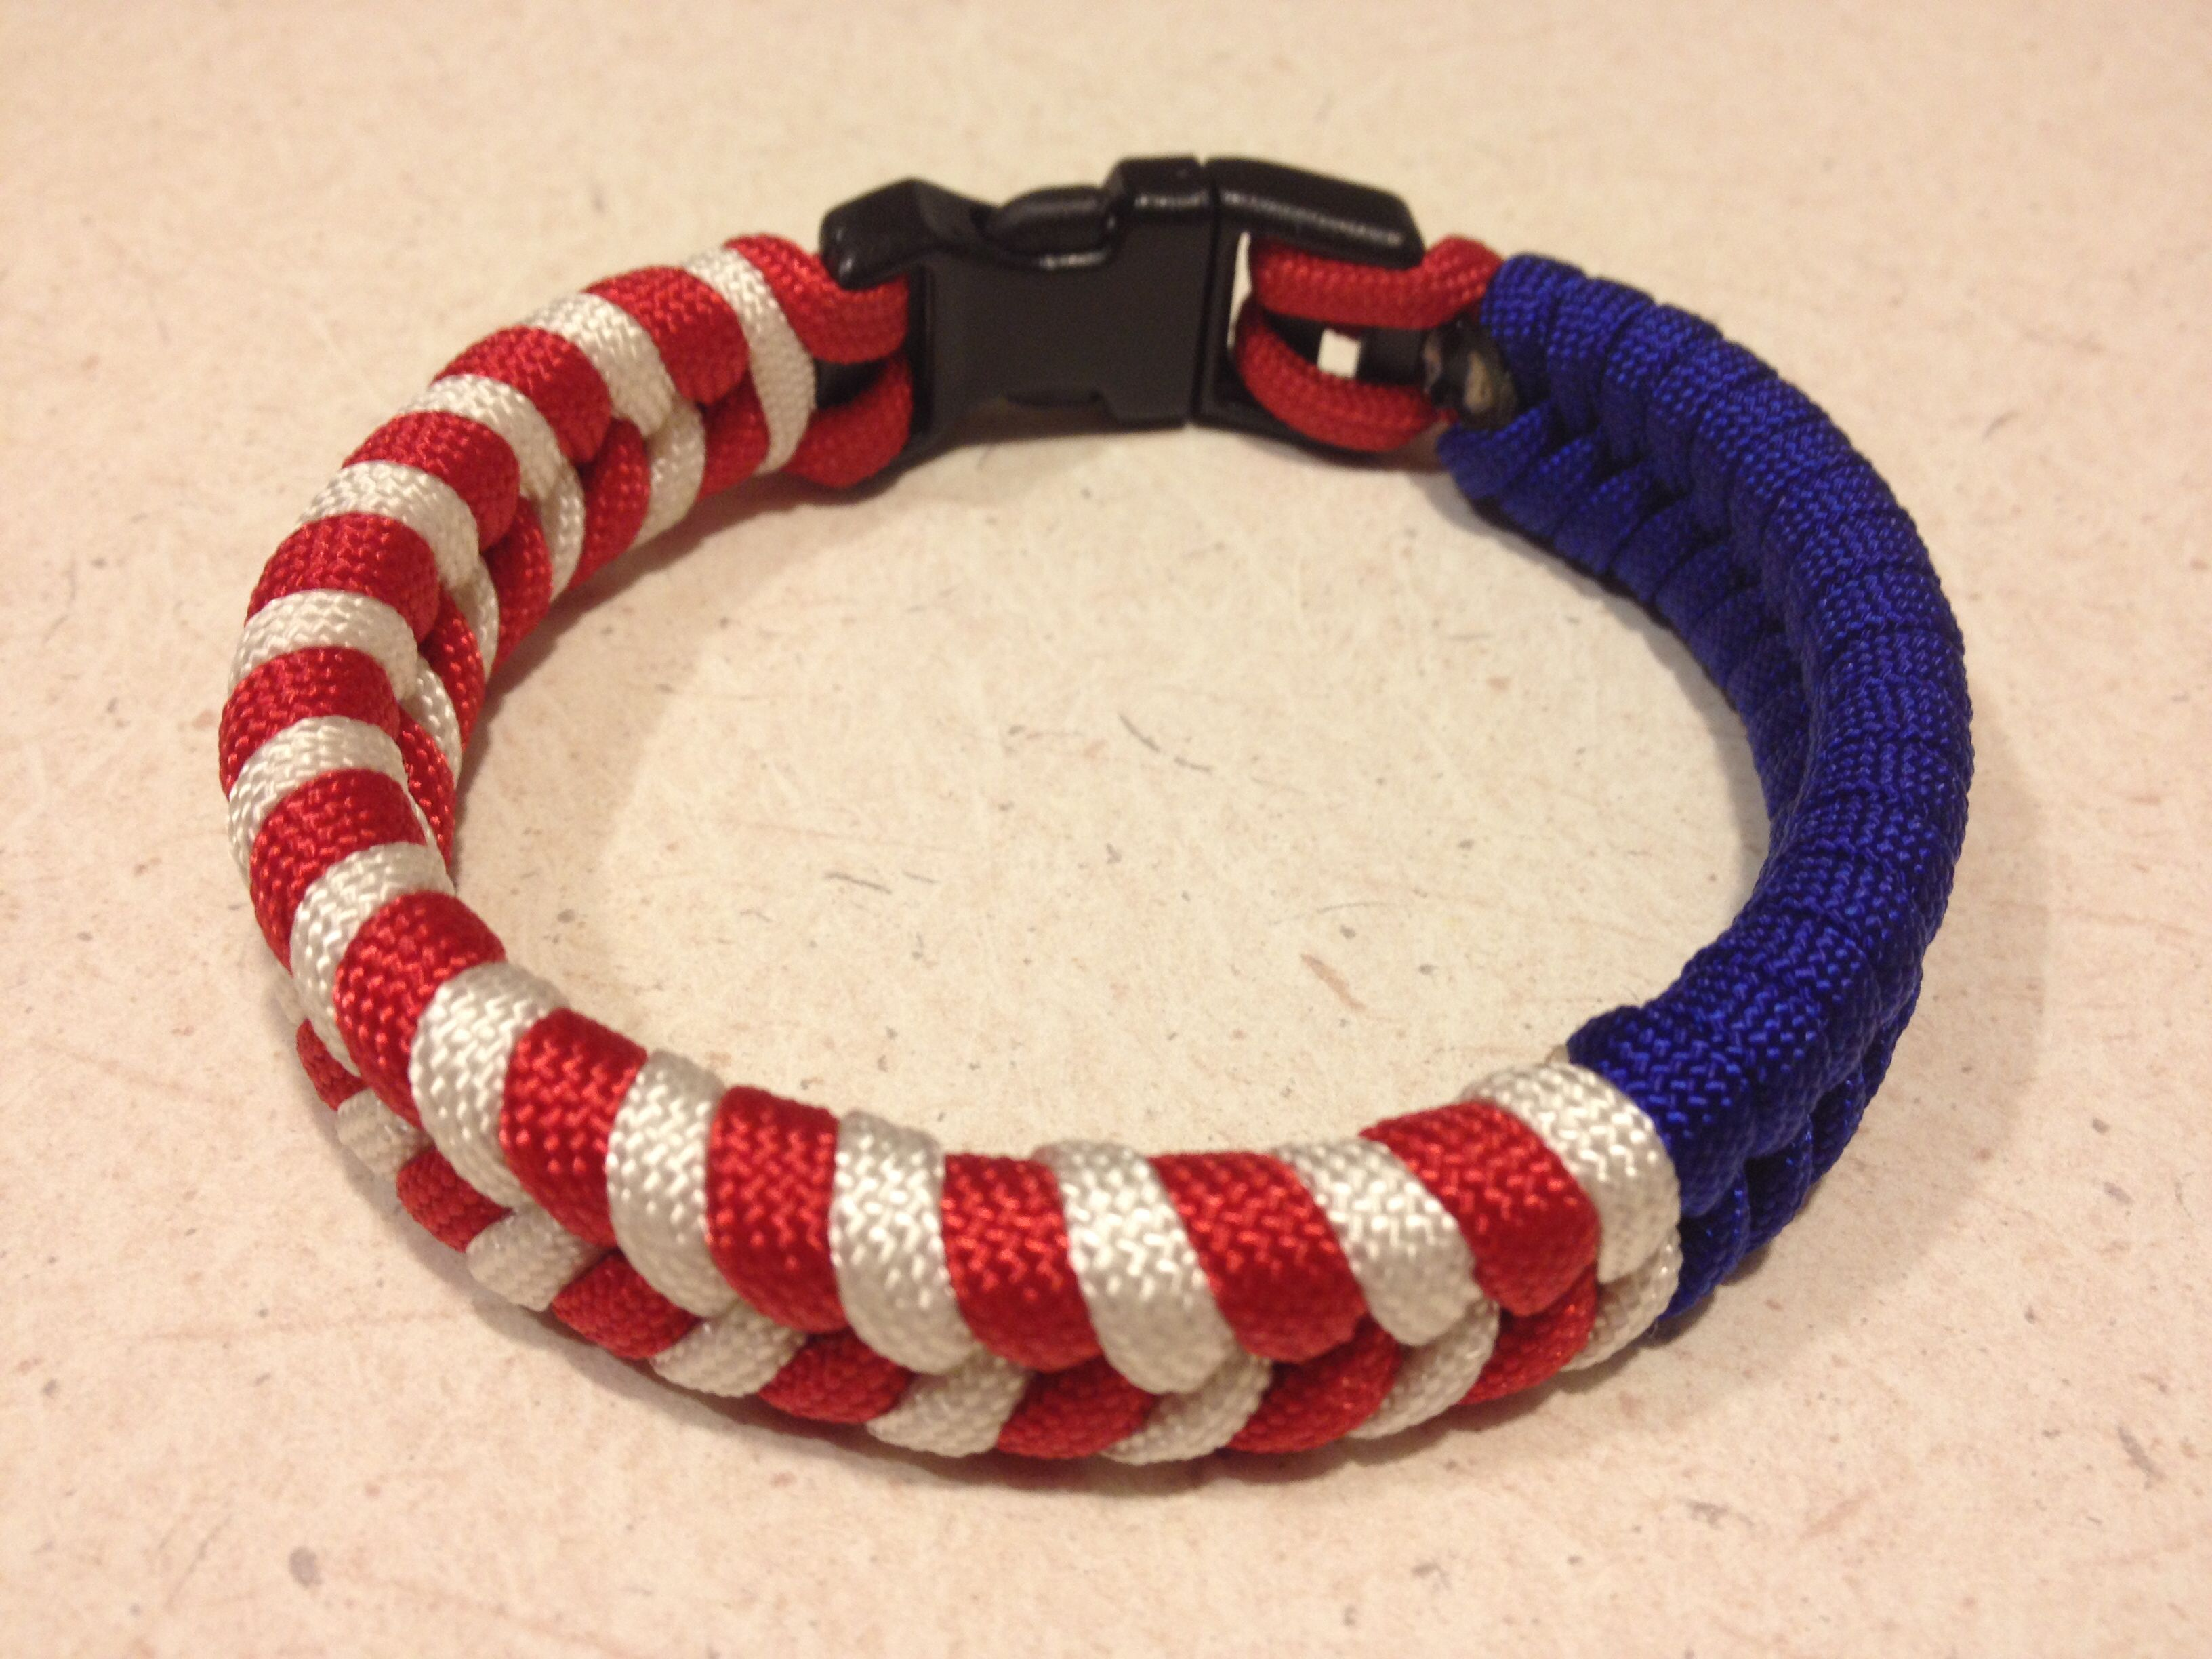 paracord on pinterest 42 pins